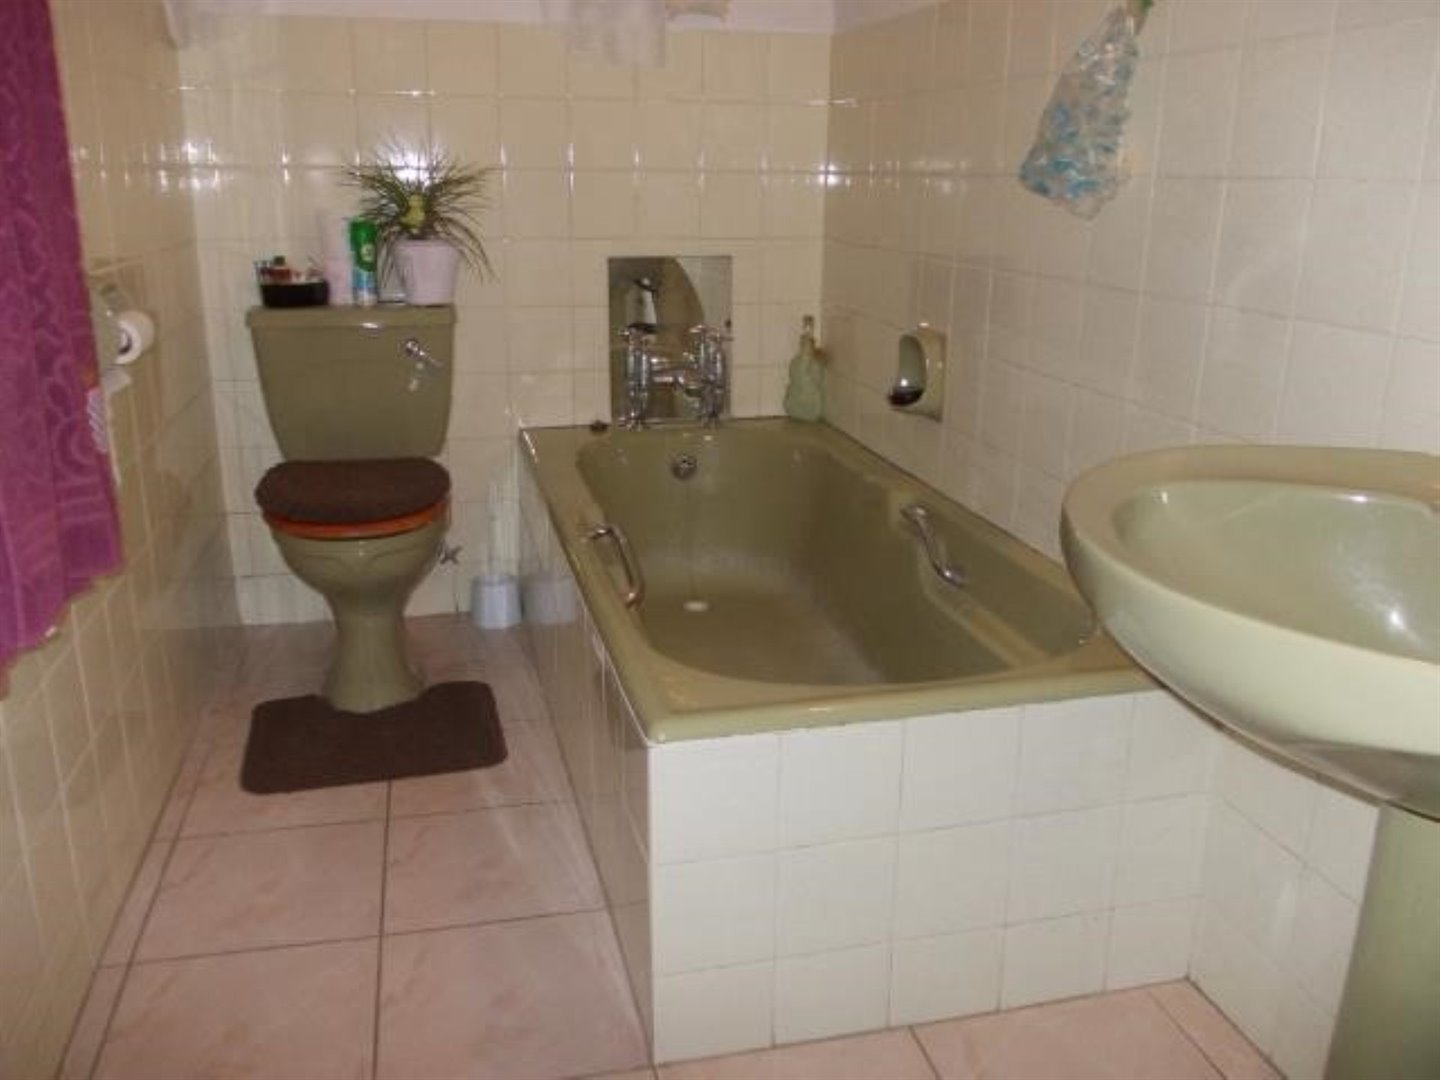 Clansthal property for sale. Ref No: 12736980. Picture no 10